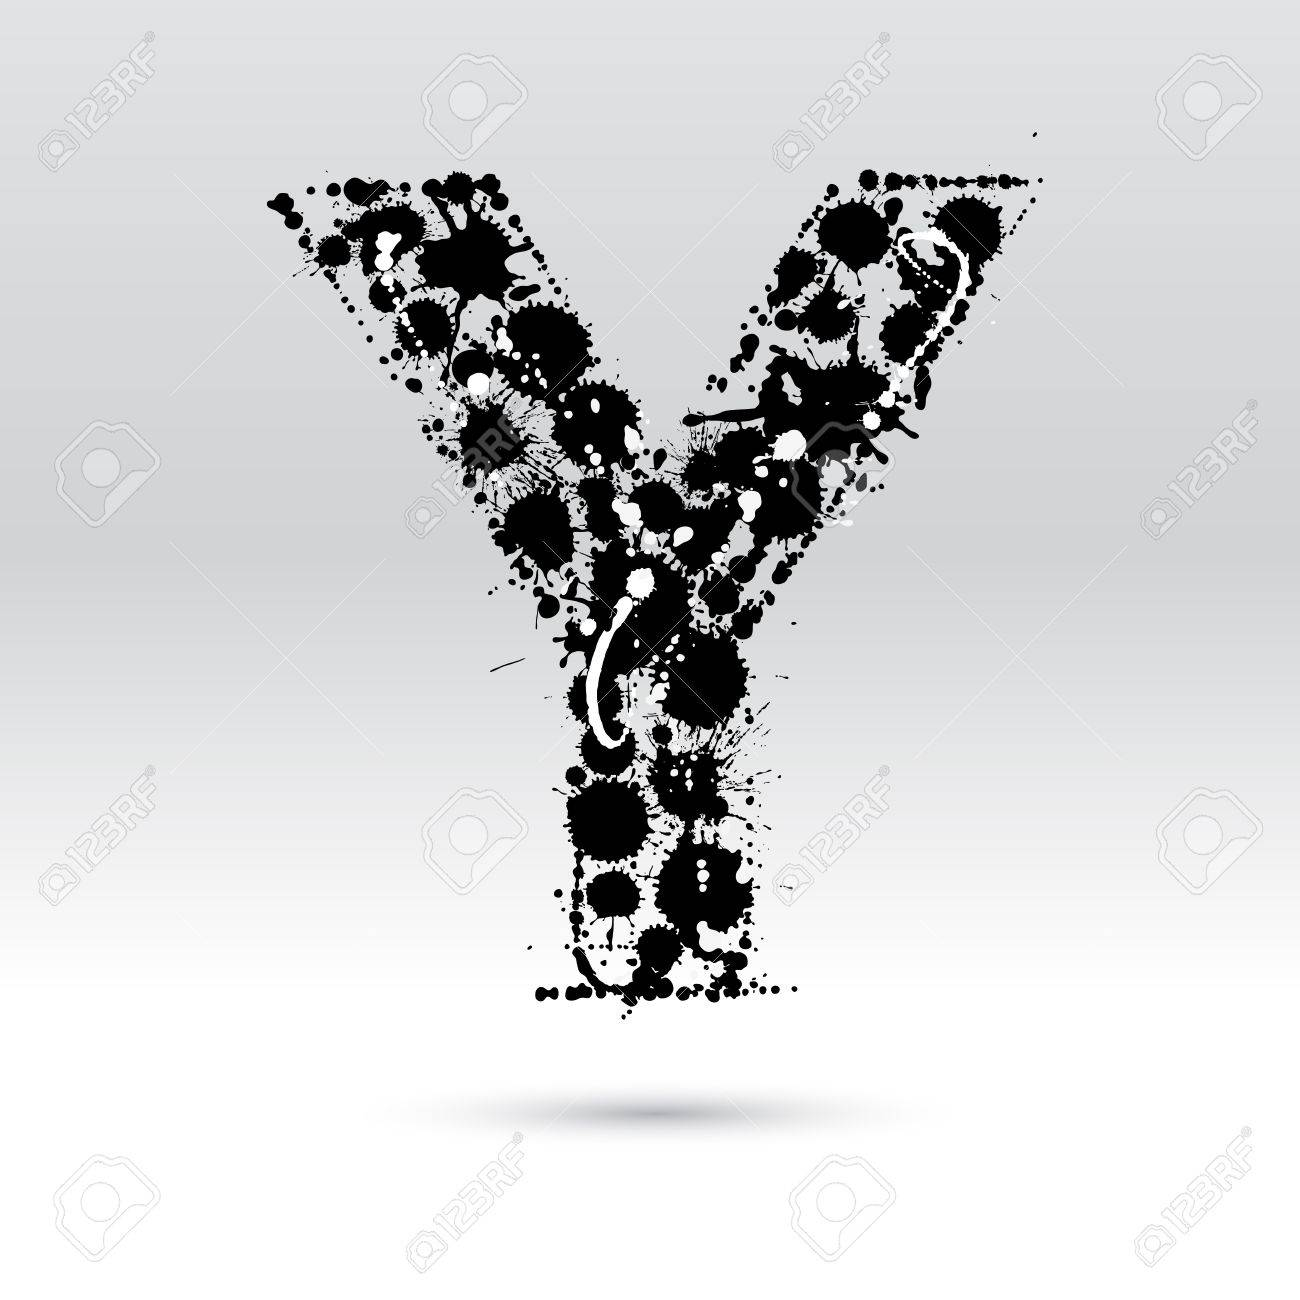 Letter Y Formed By Black And White Ink Blots Royalty Free Cliparts